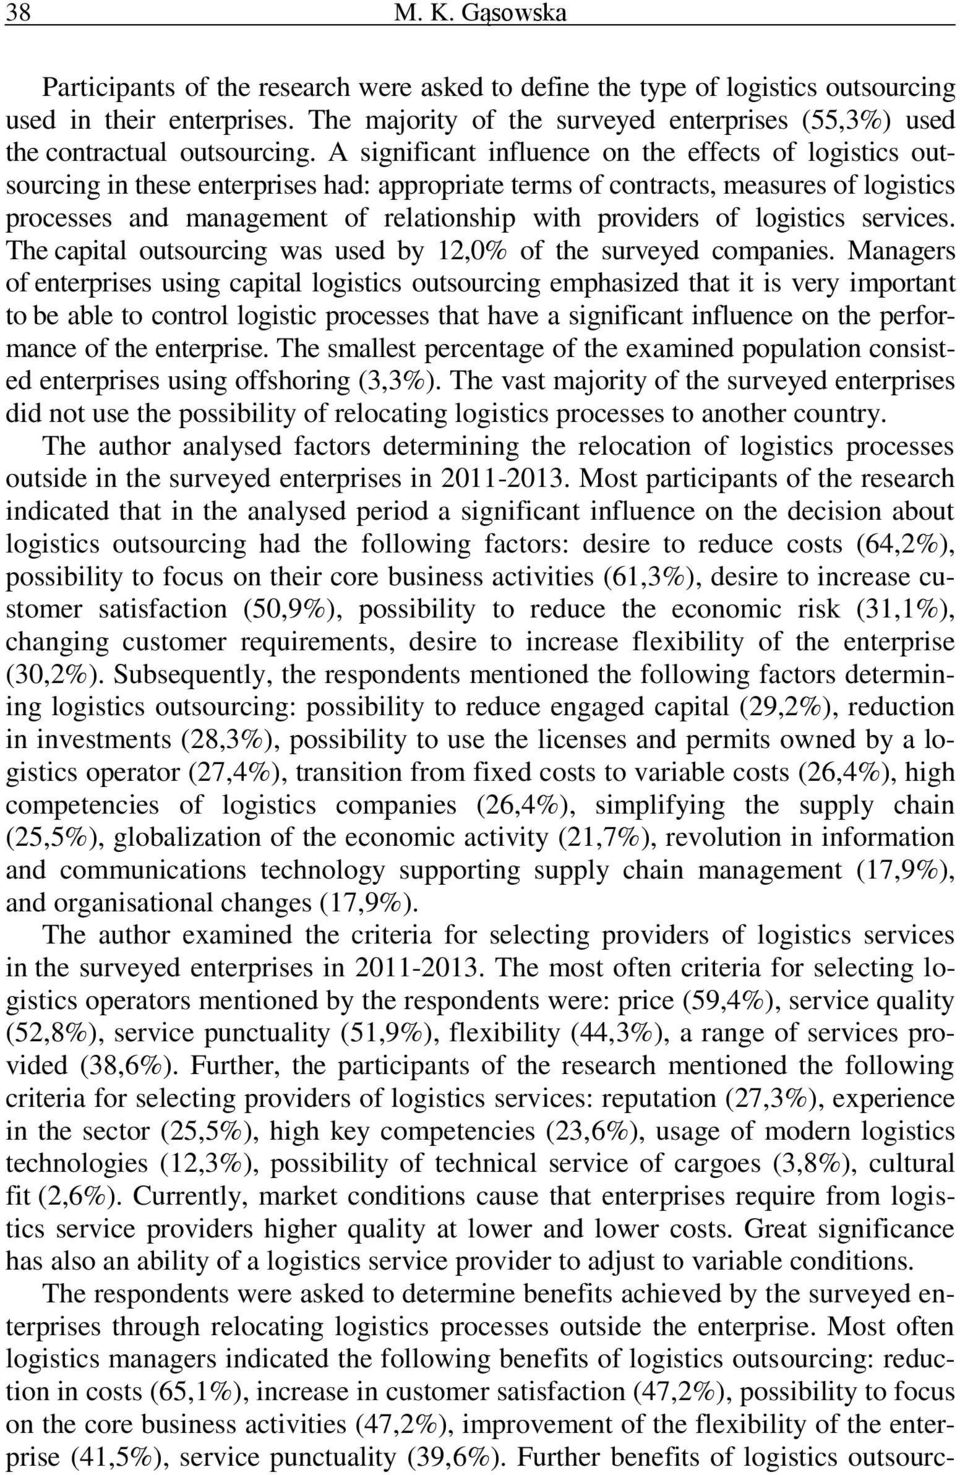 A significant influence on the effects of logistics outsourcing in these enterprises had: appropriate terms of contracts, measures of logistics processes and management of relationship with providers